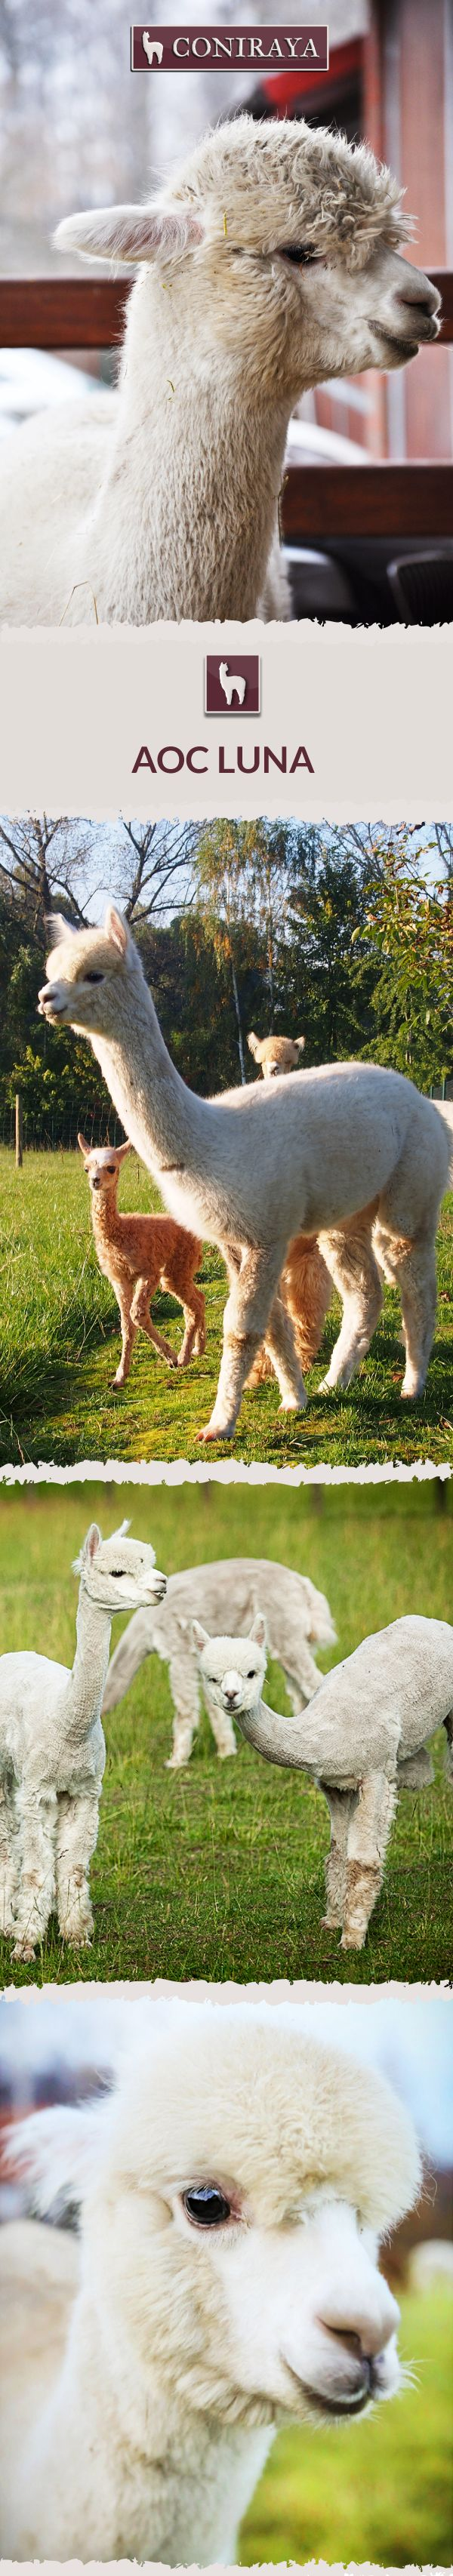 Meet Coniraya - AoC Luna. This Alpaca was born in 2014 and its fiber is in color: White. Check out more details on our site!